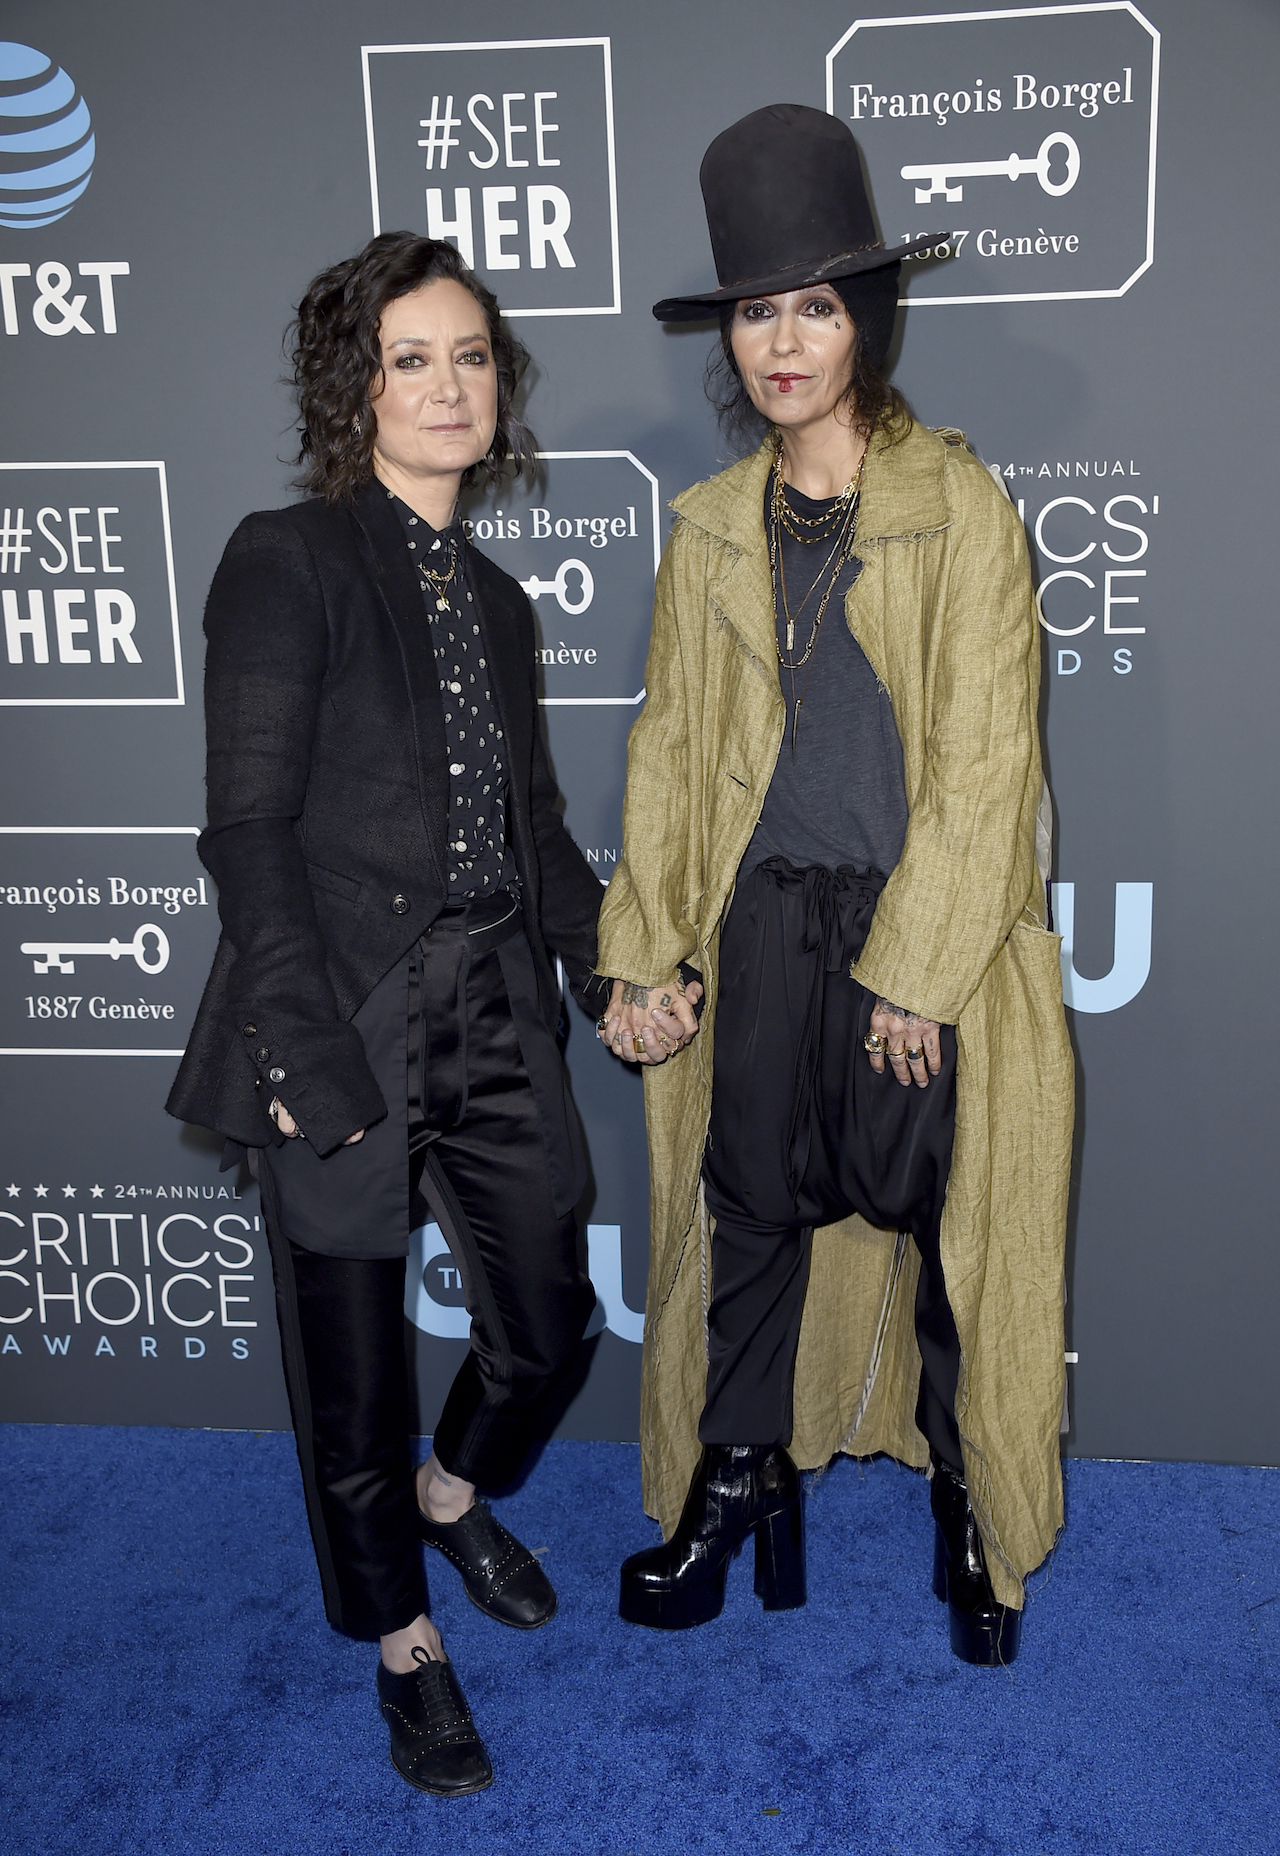 "<div class=""meta image-caption""><div class=""origin-logo origin-image ap""><span>AP</span></div><span class=""caption-text"">Sara Gilbert, left, and Linda Perry arrive at the 24th annual Critics' Choice Awards on Sunday, Jan. 13, 2019, at the Barker Hangar in Santa Monica, Calif. (Jordan Strauss/Invision/AP)</span></div>"